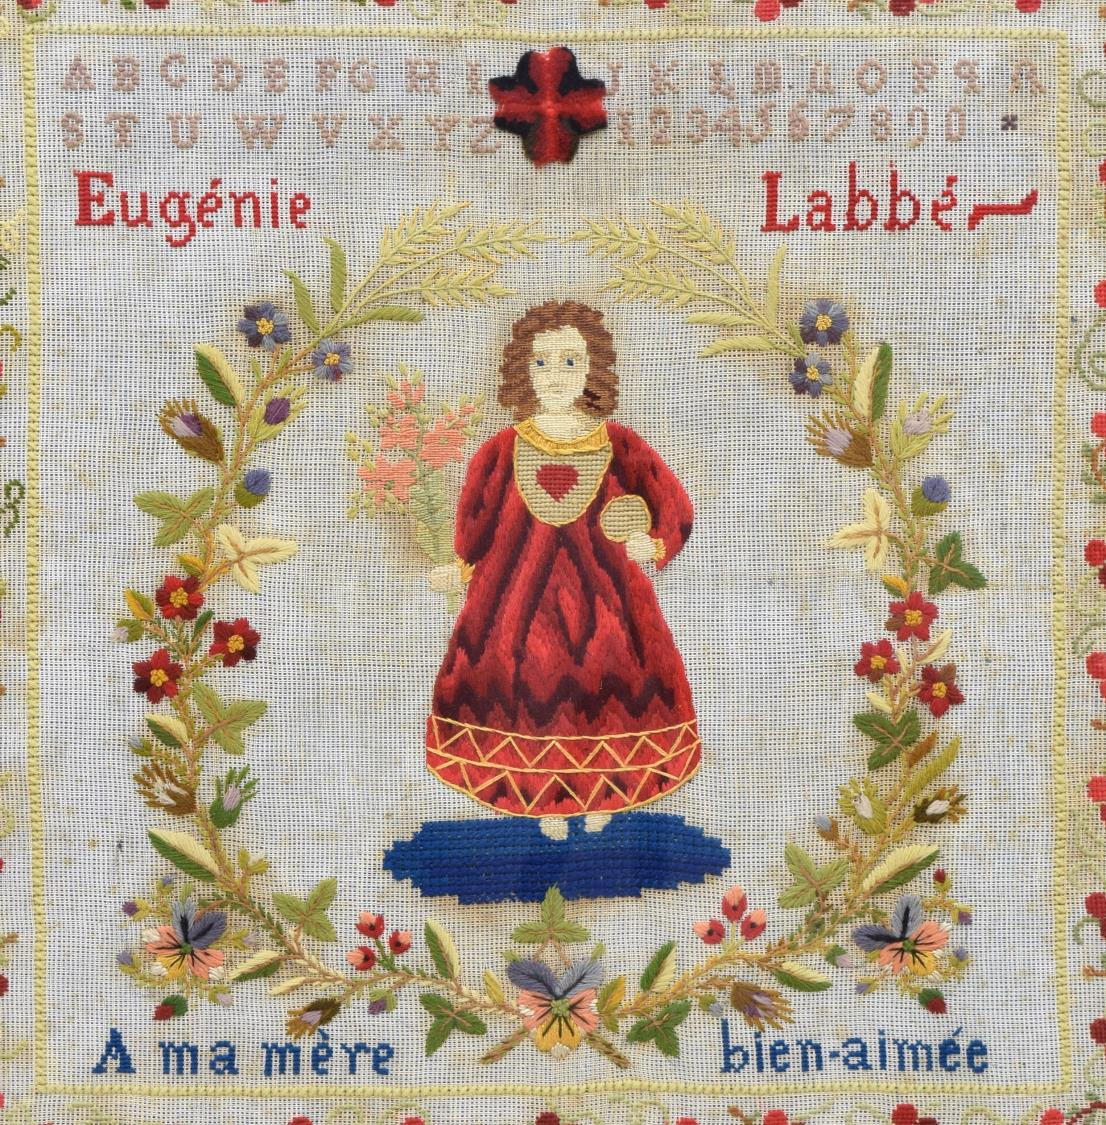 French Signed Figural Needlepoint Embroidery Day 2 Spain France